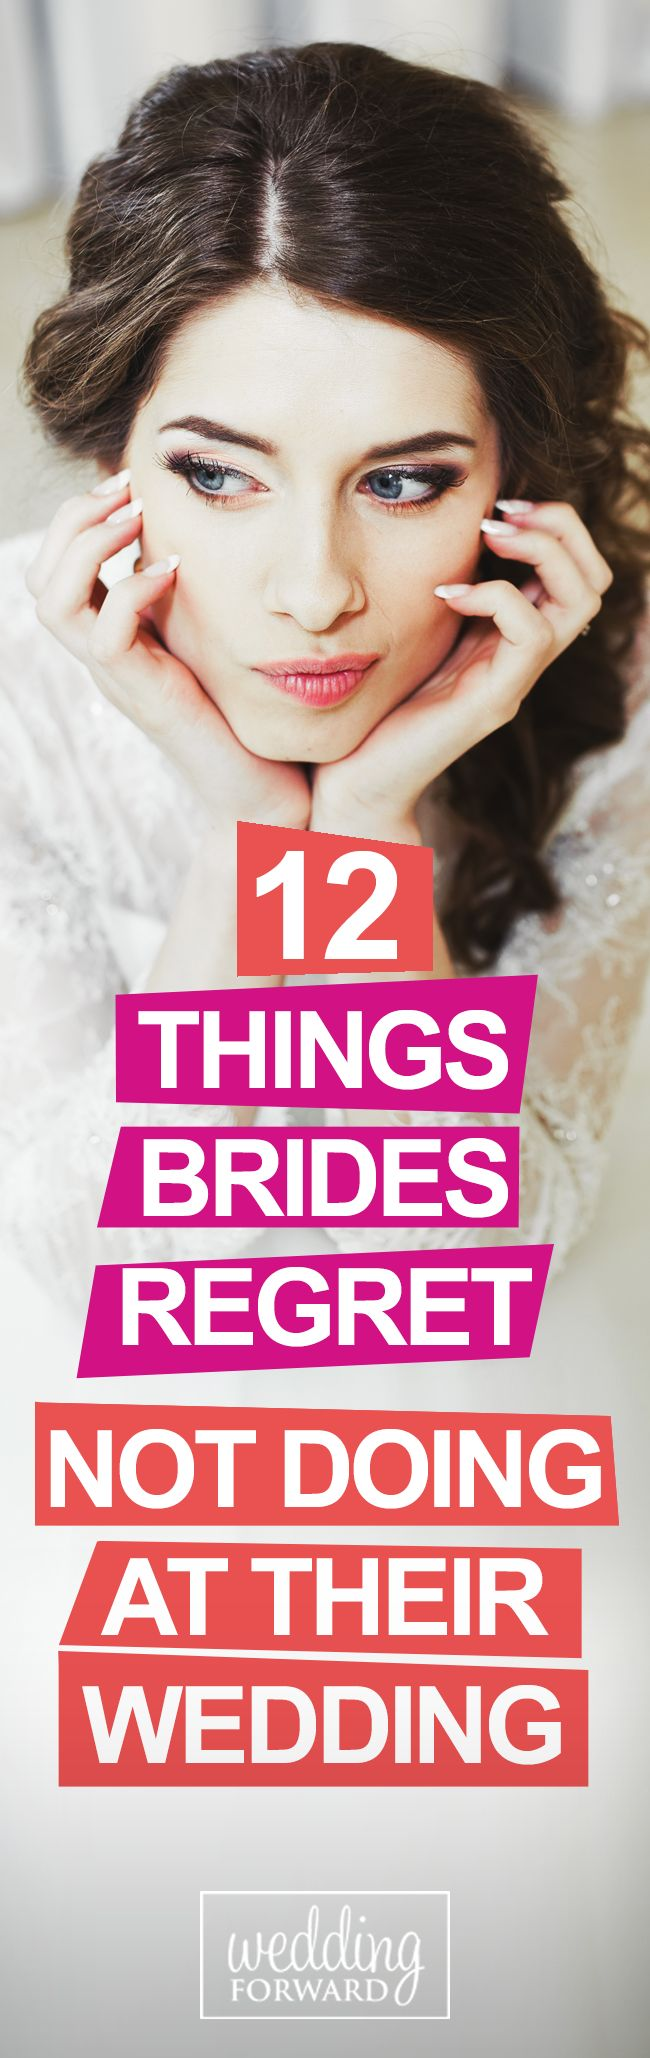 Wedding days are filled with many do's and don'ts but there are a few things that ‪#‎brides‬ often regret not doing at their ‪#‎wedding‬... http://www.weddingforward.com/things-brides-regret-not-doing-at-their-wedding/ #weddings #weddingplanning